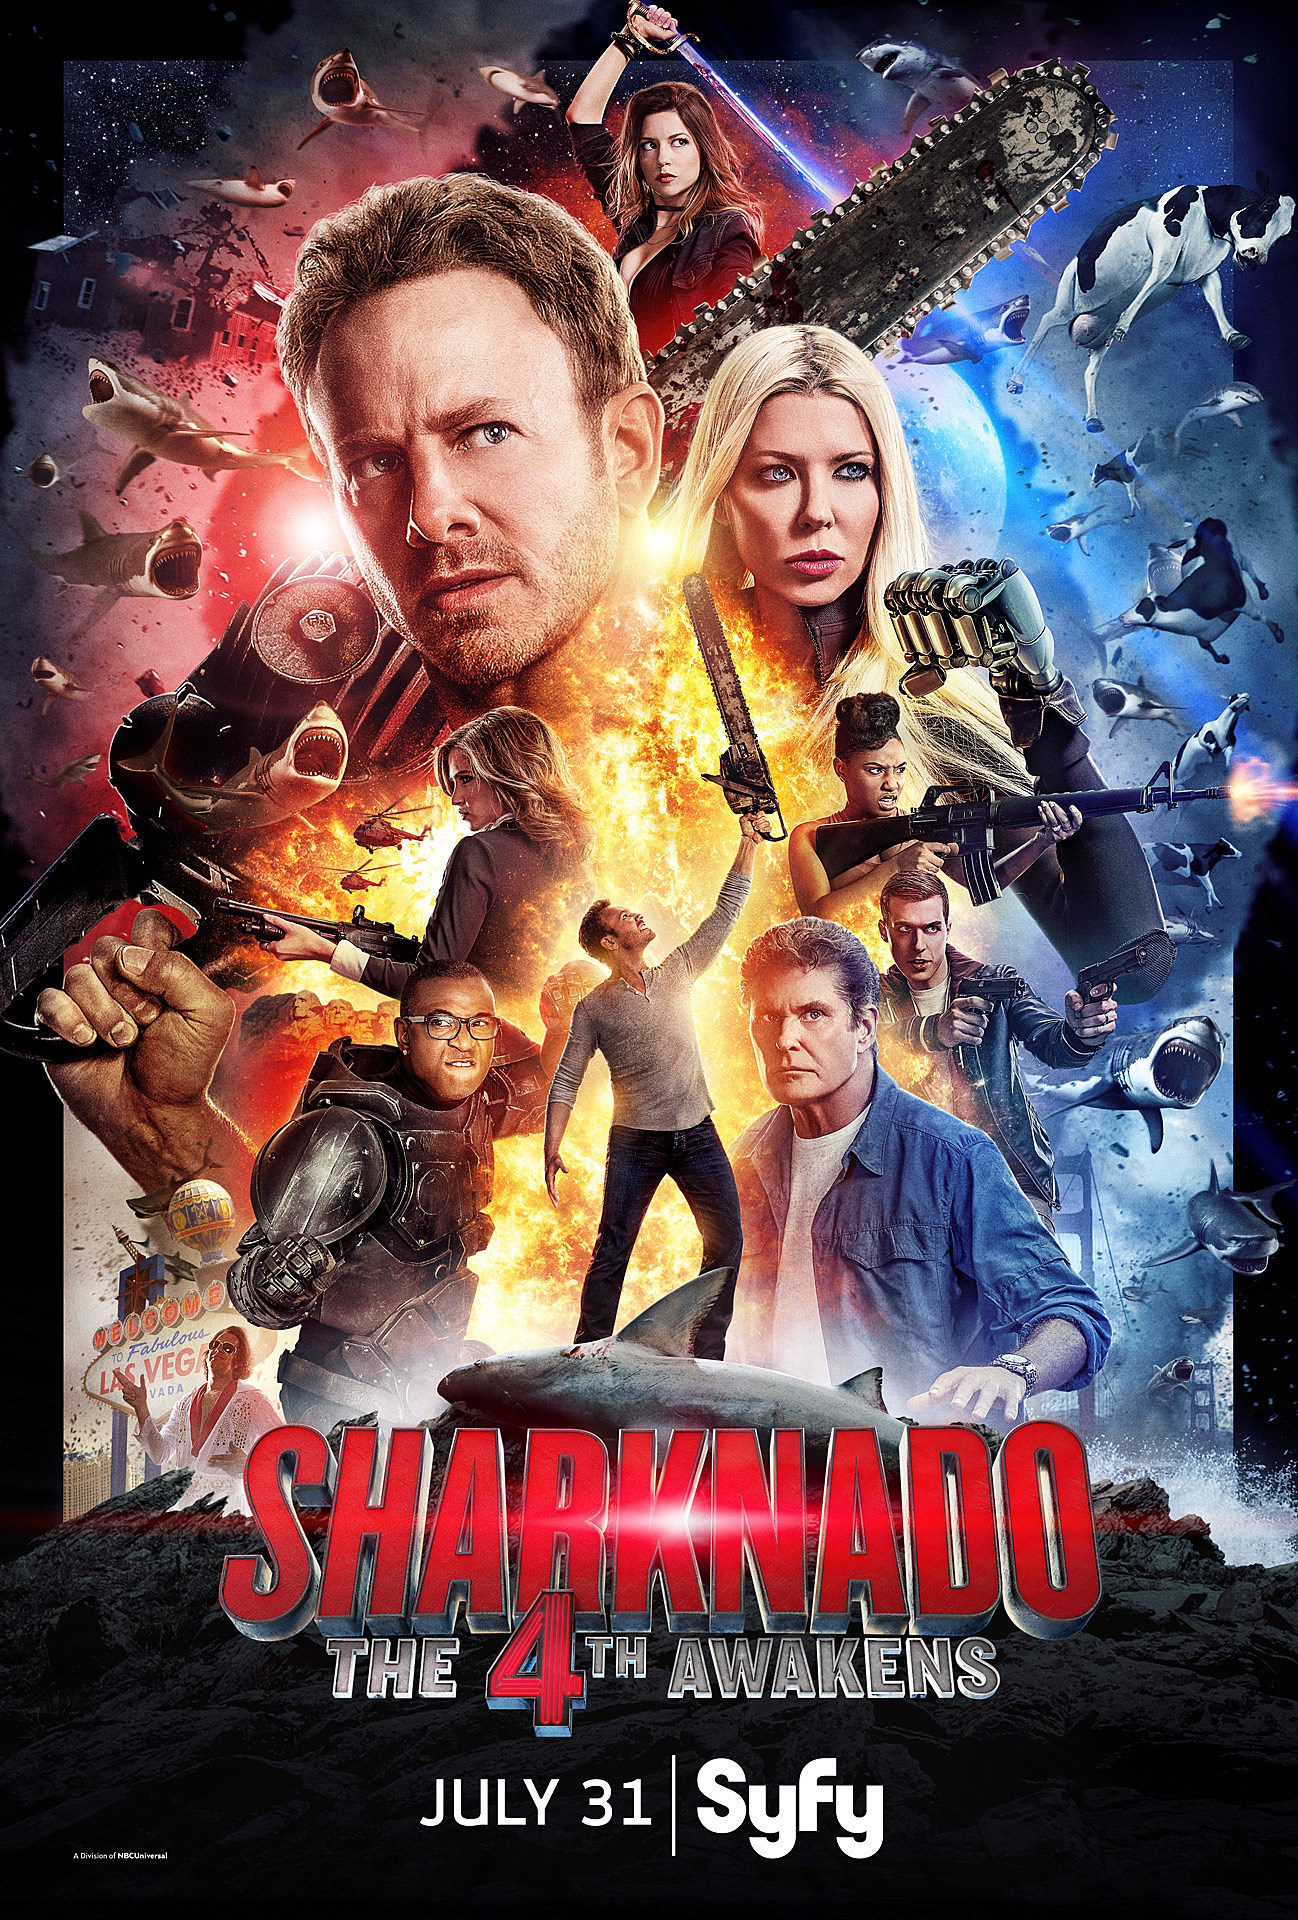 'Sharknado: The 4th Awakens' Gets a 'Star Wars'-Style Poster